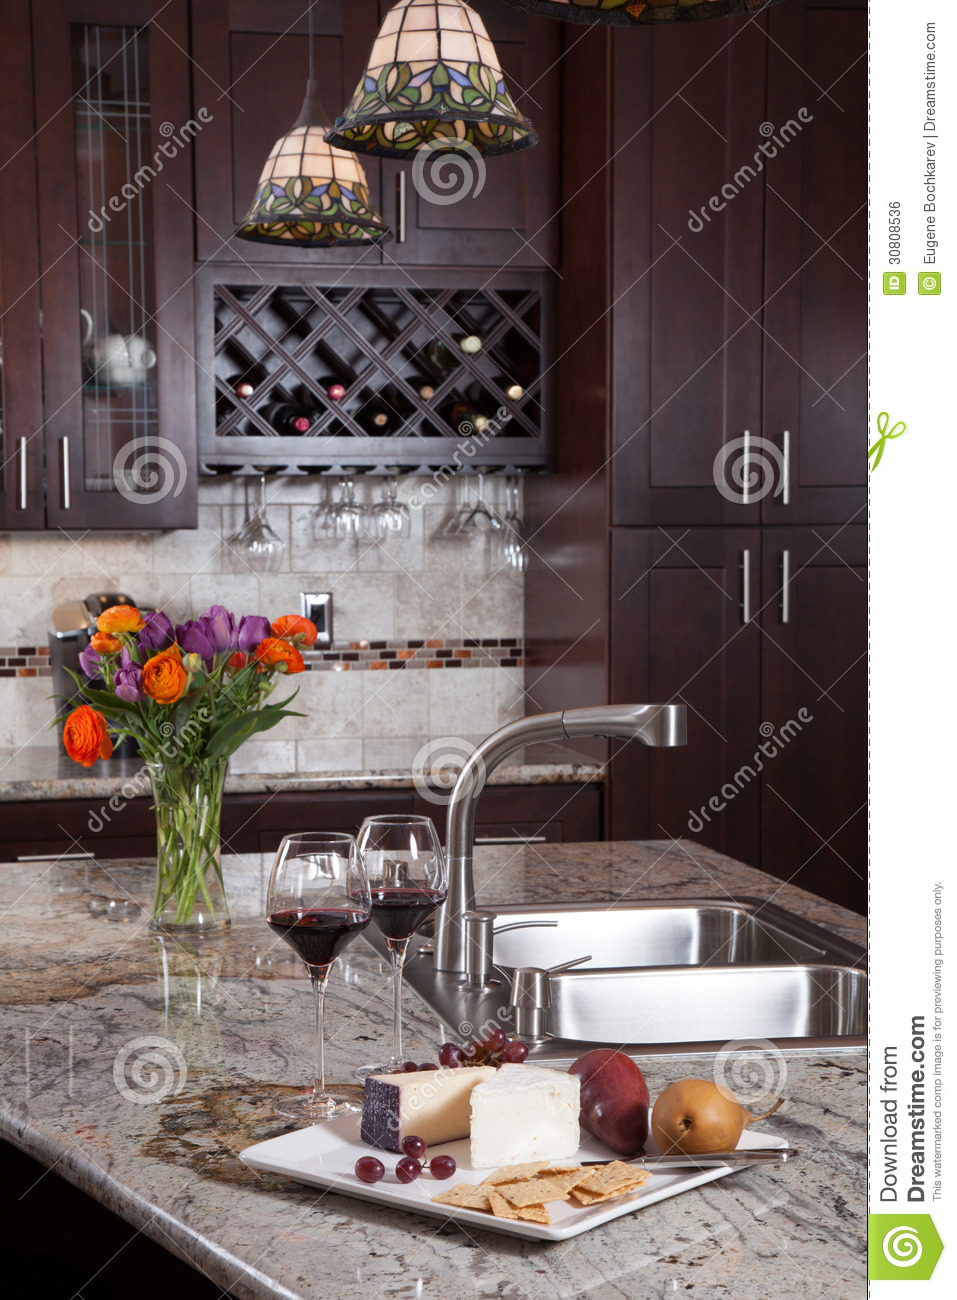 Contemporary custom kitchen royalty free stock image image 30808536 - Modern luxury kitchen with granite countertop ...